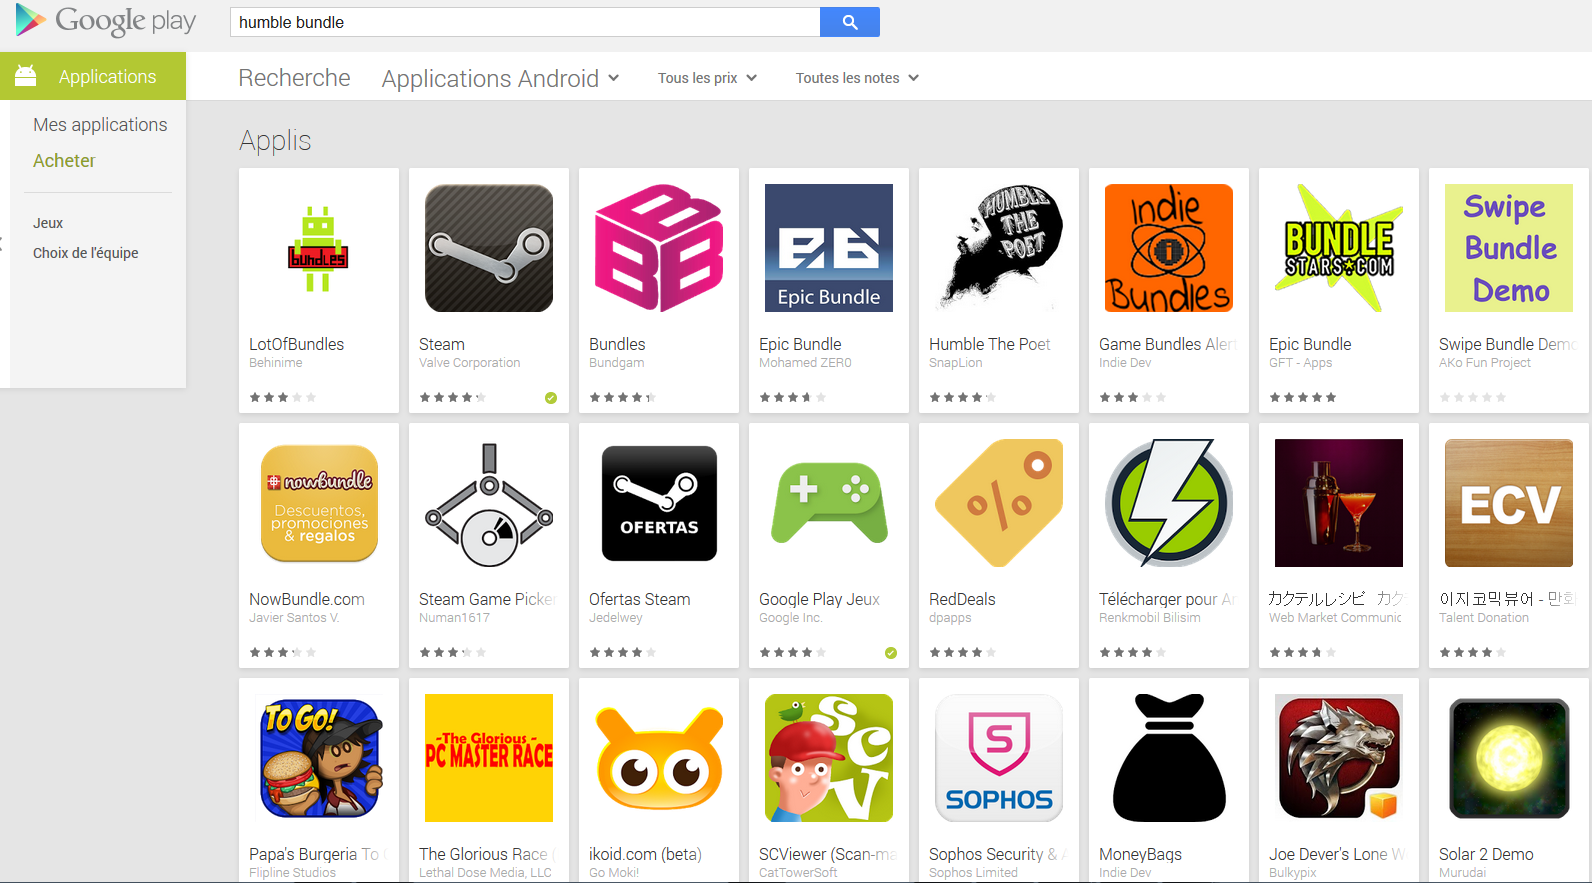 L'application Humble bundle est désormais introuvable sur le Play Store de Google